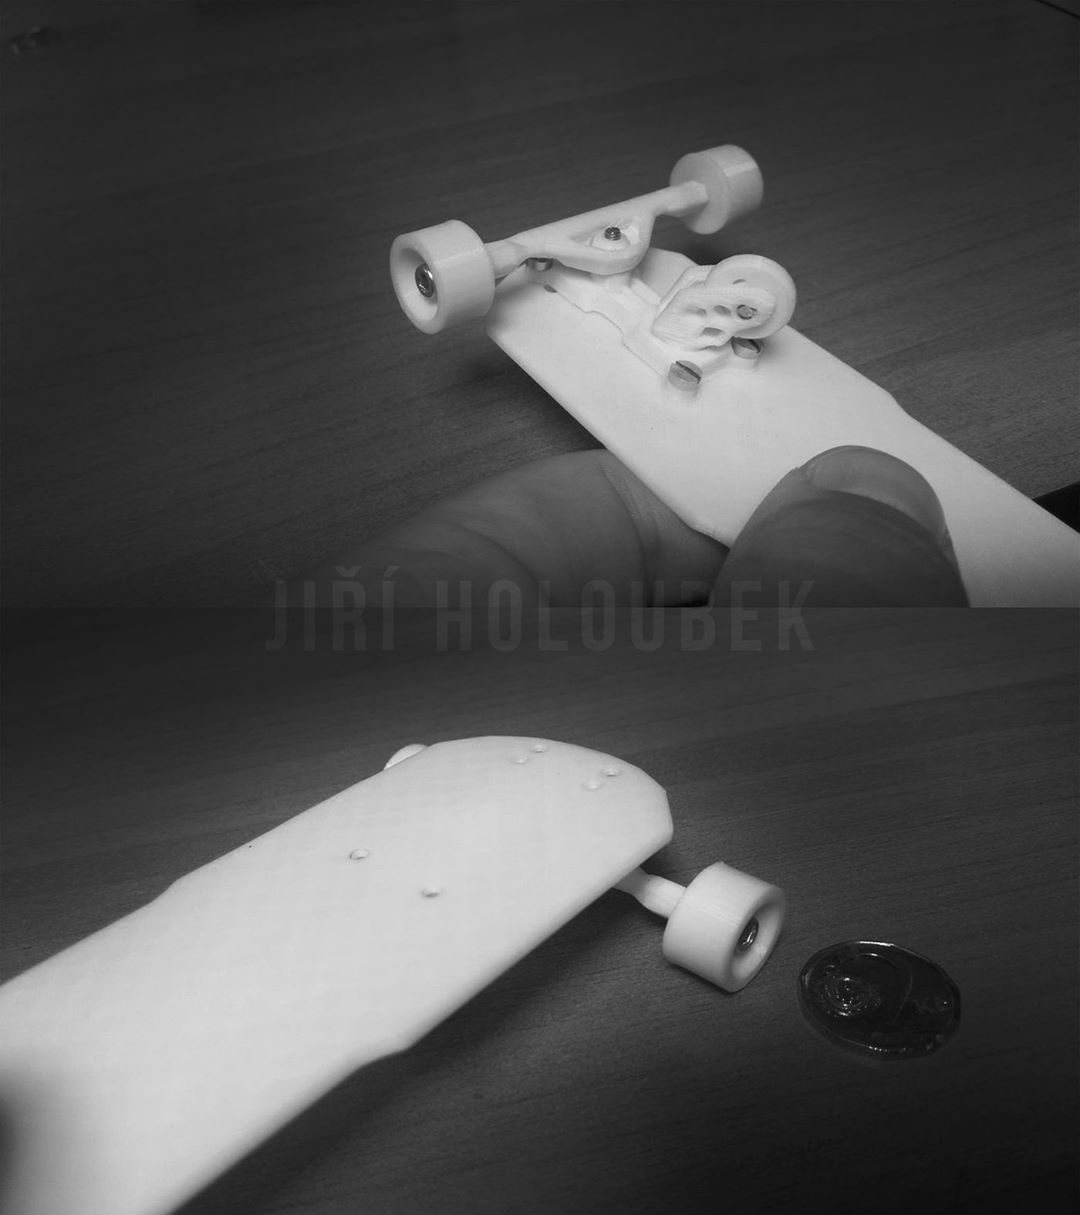 Custom Finger Freebord made by Jiří Holoubek Practice your overslides safely on the comfort of your own desk. #Freebord #SnowboardTheDesks